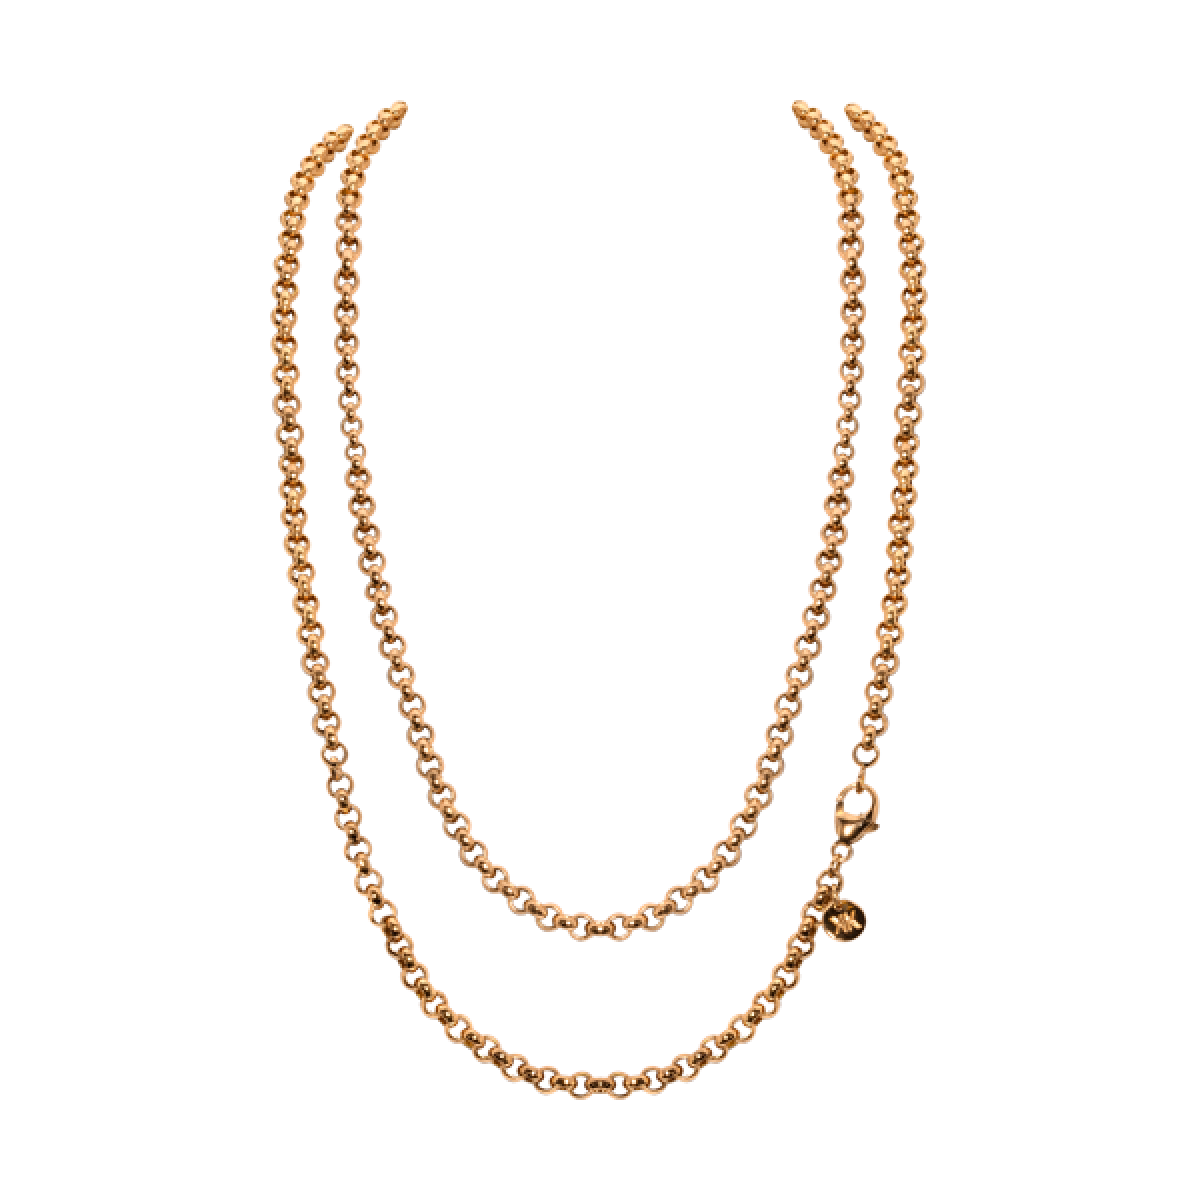 uploads necklace necklace PNG130 4